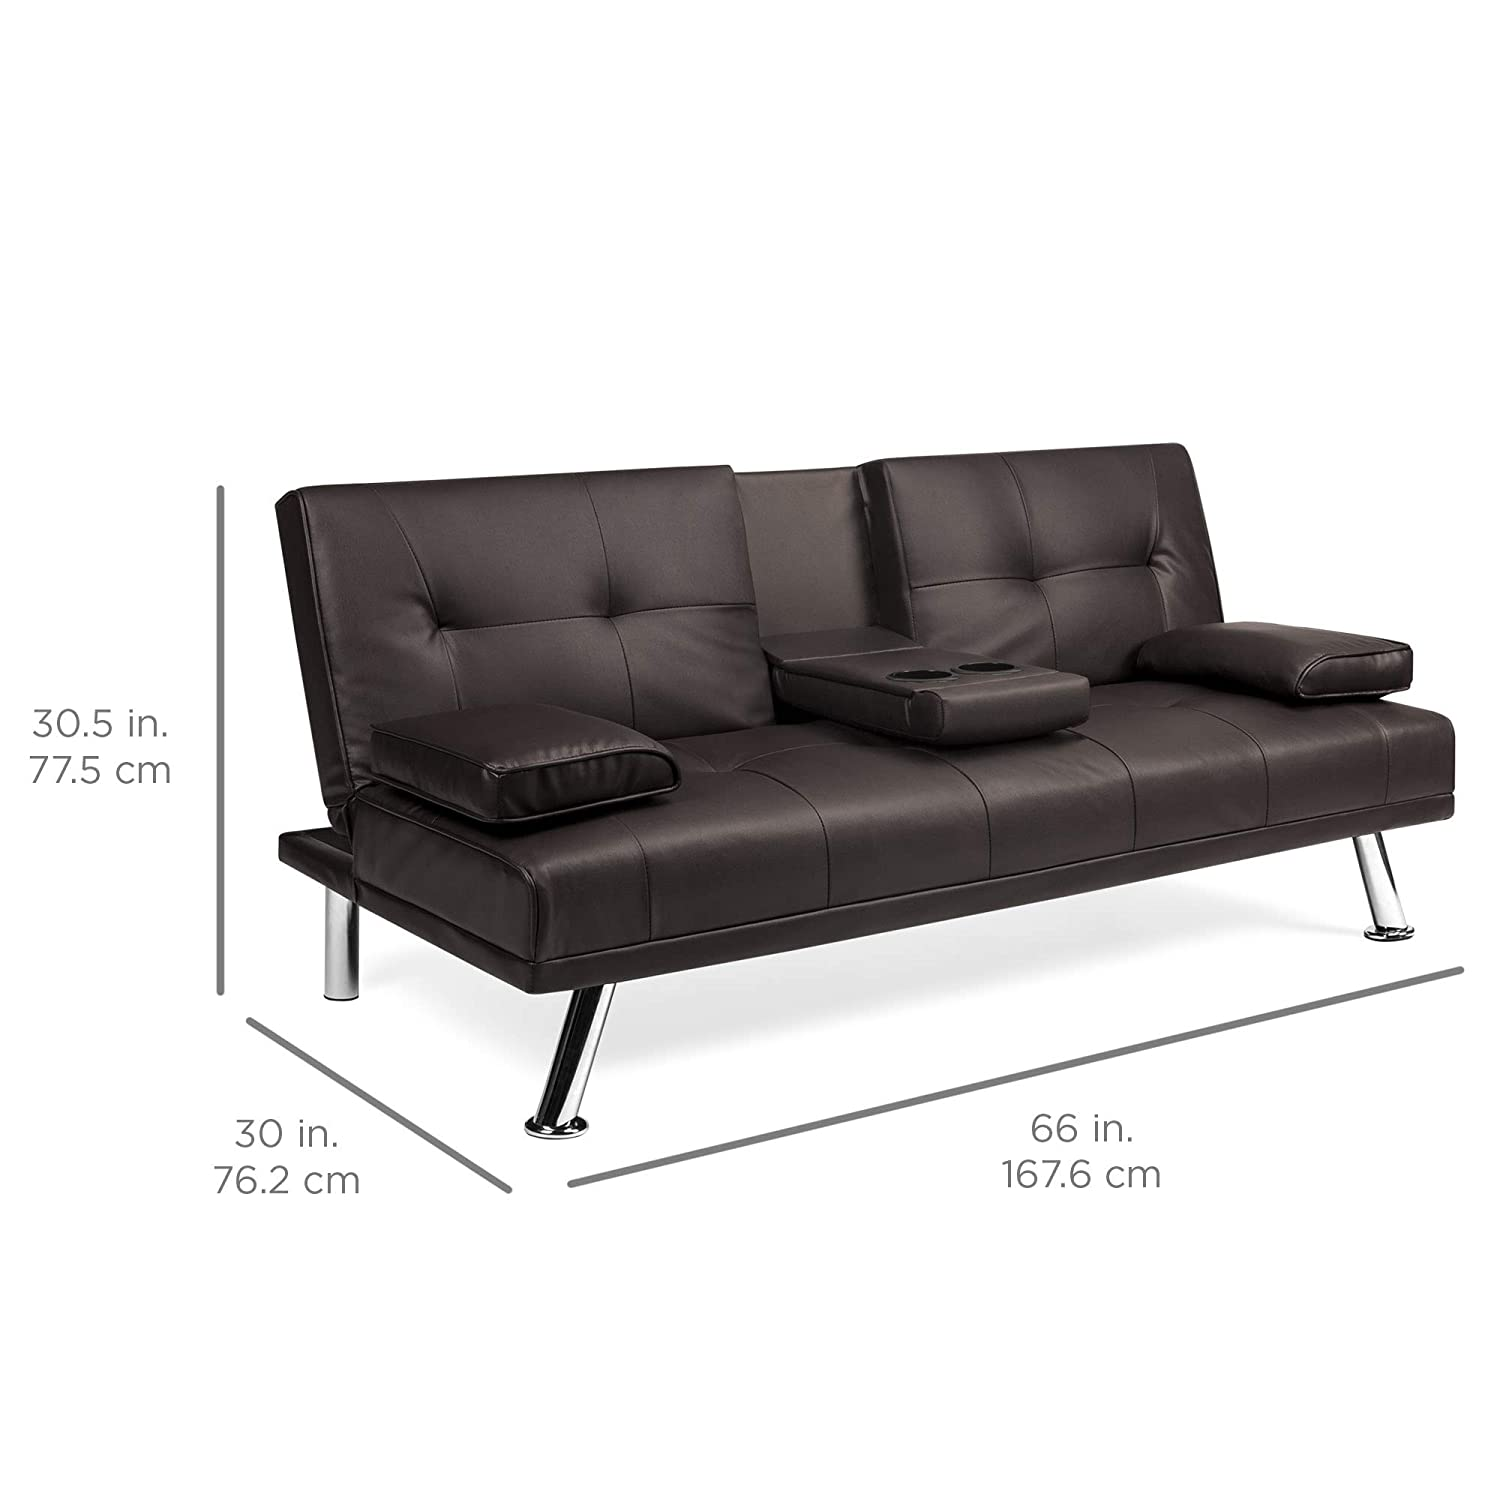 Best Choice Products Modern Faux Leather Futon Sofa Bed Fold Up /& Down Recliner Couch with Cup Holders Black